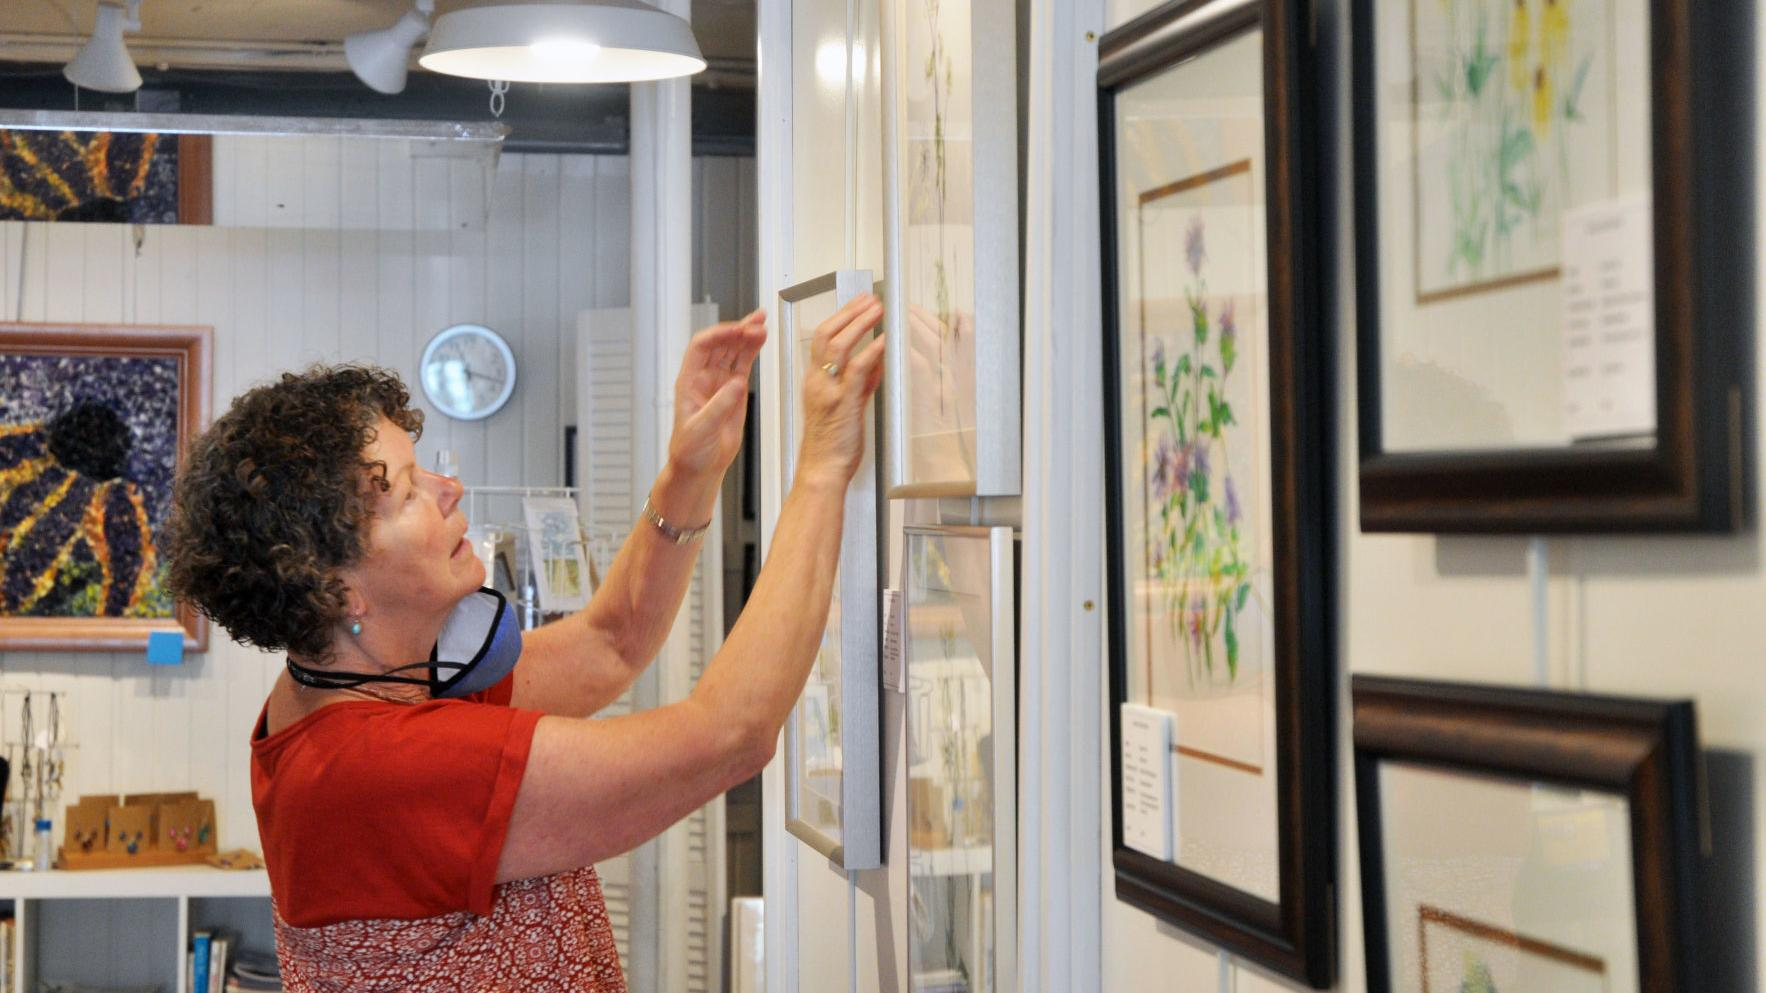 Watch now: Gallery 223 conducts annual high school art show this weekend, April 16-18